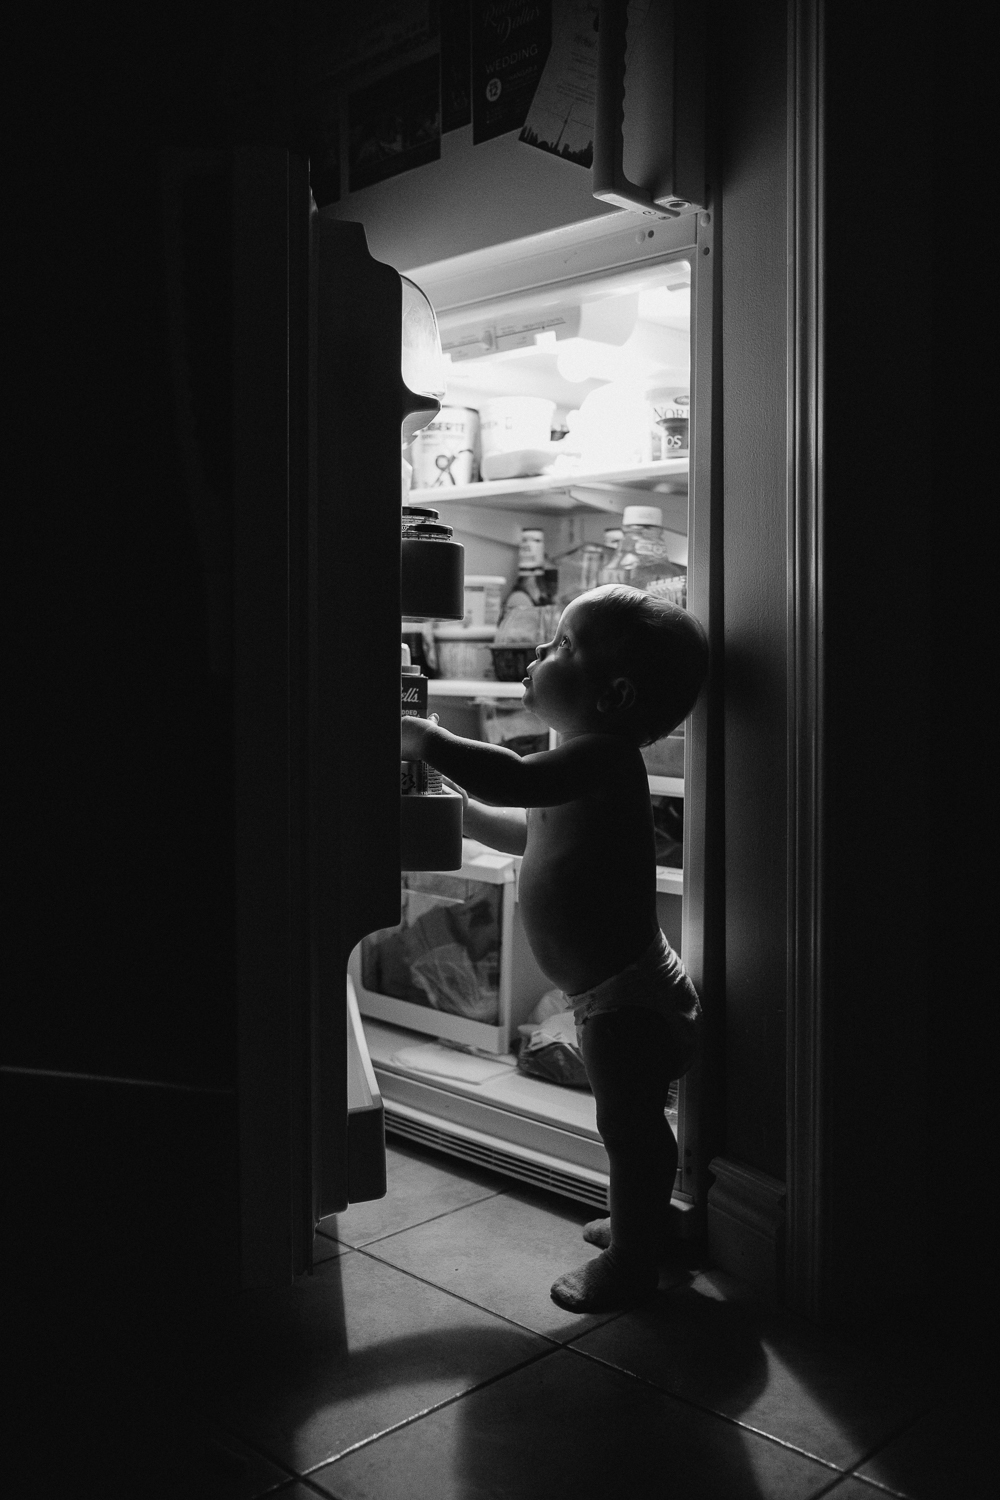 1 year old toddler boy looking into refrigerator in the dark - Markham in-home photography